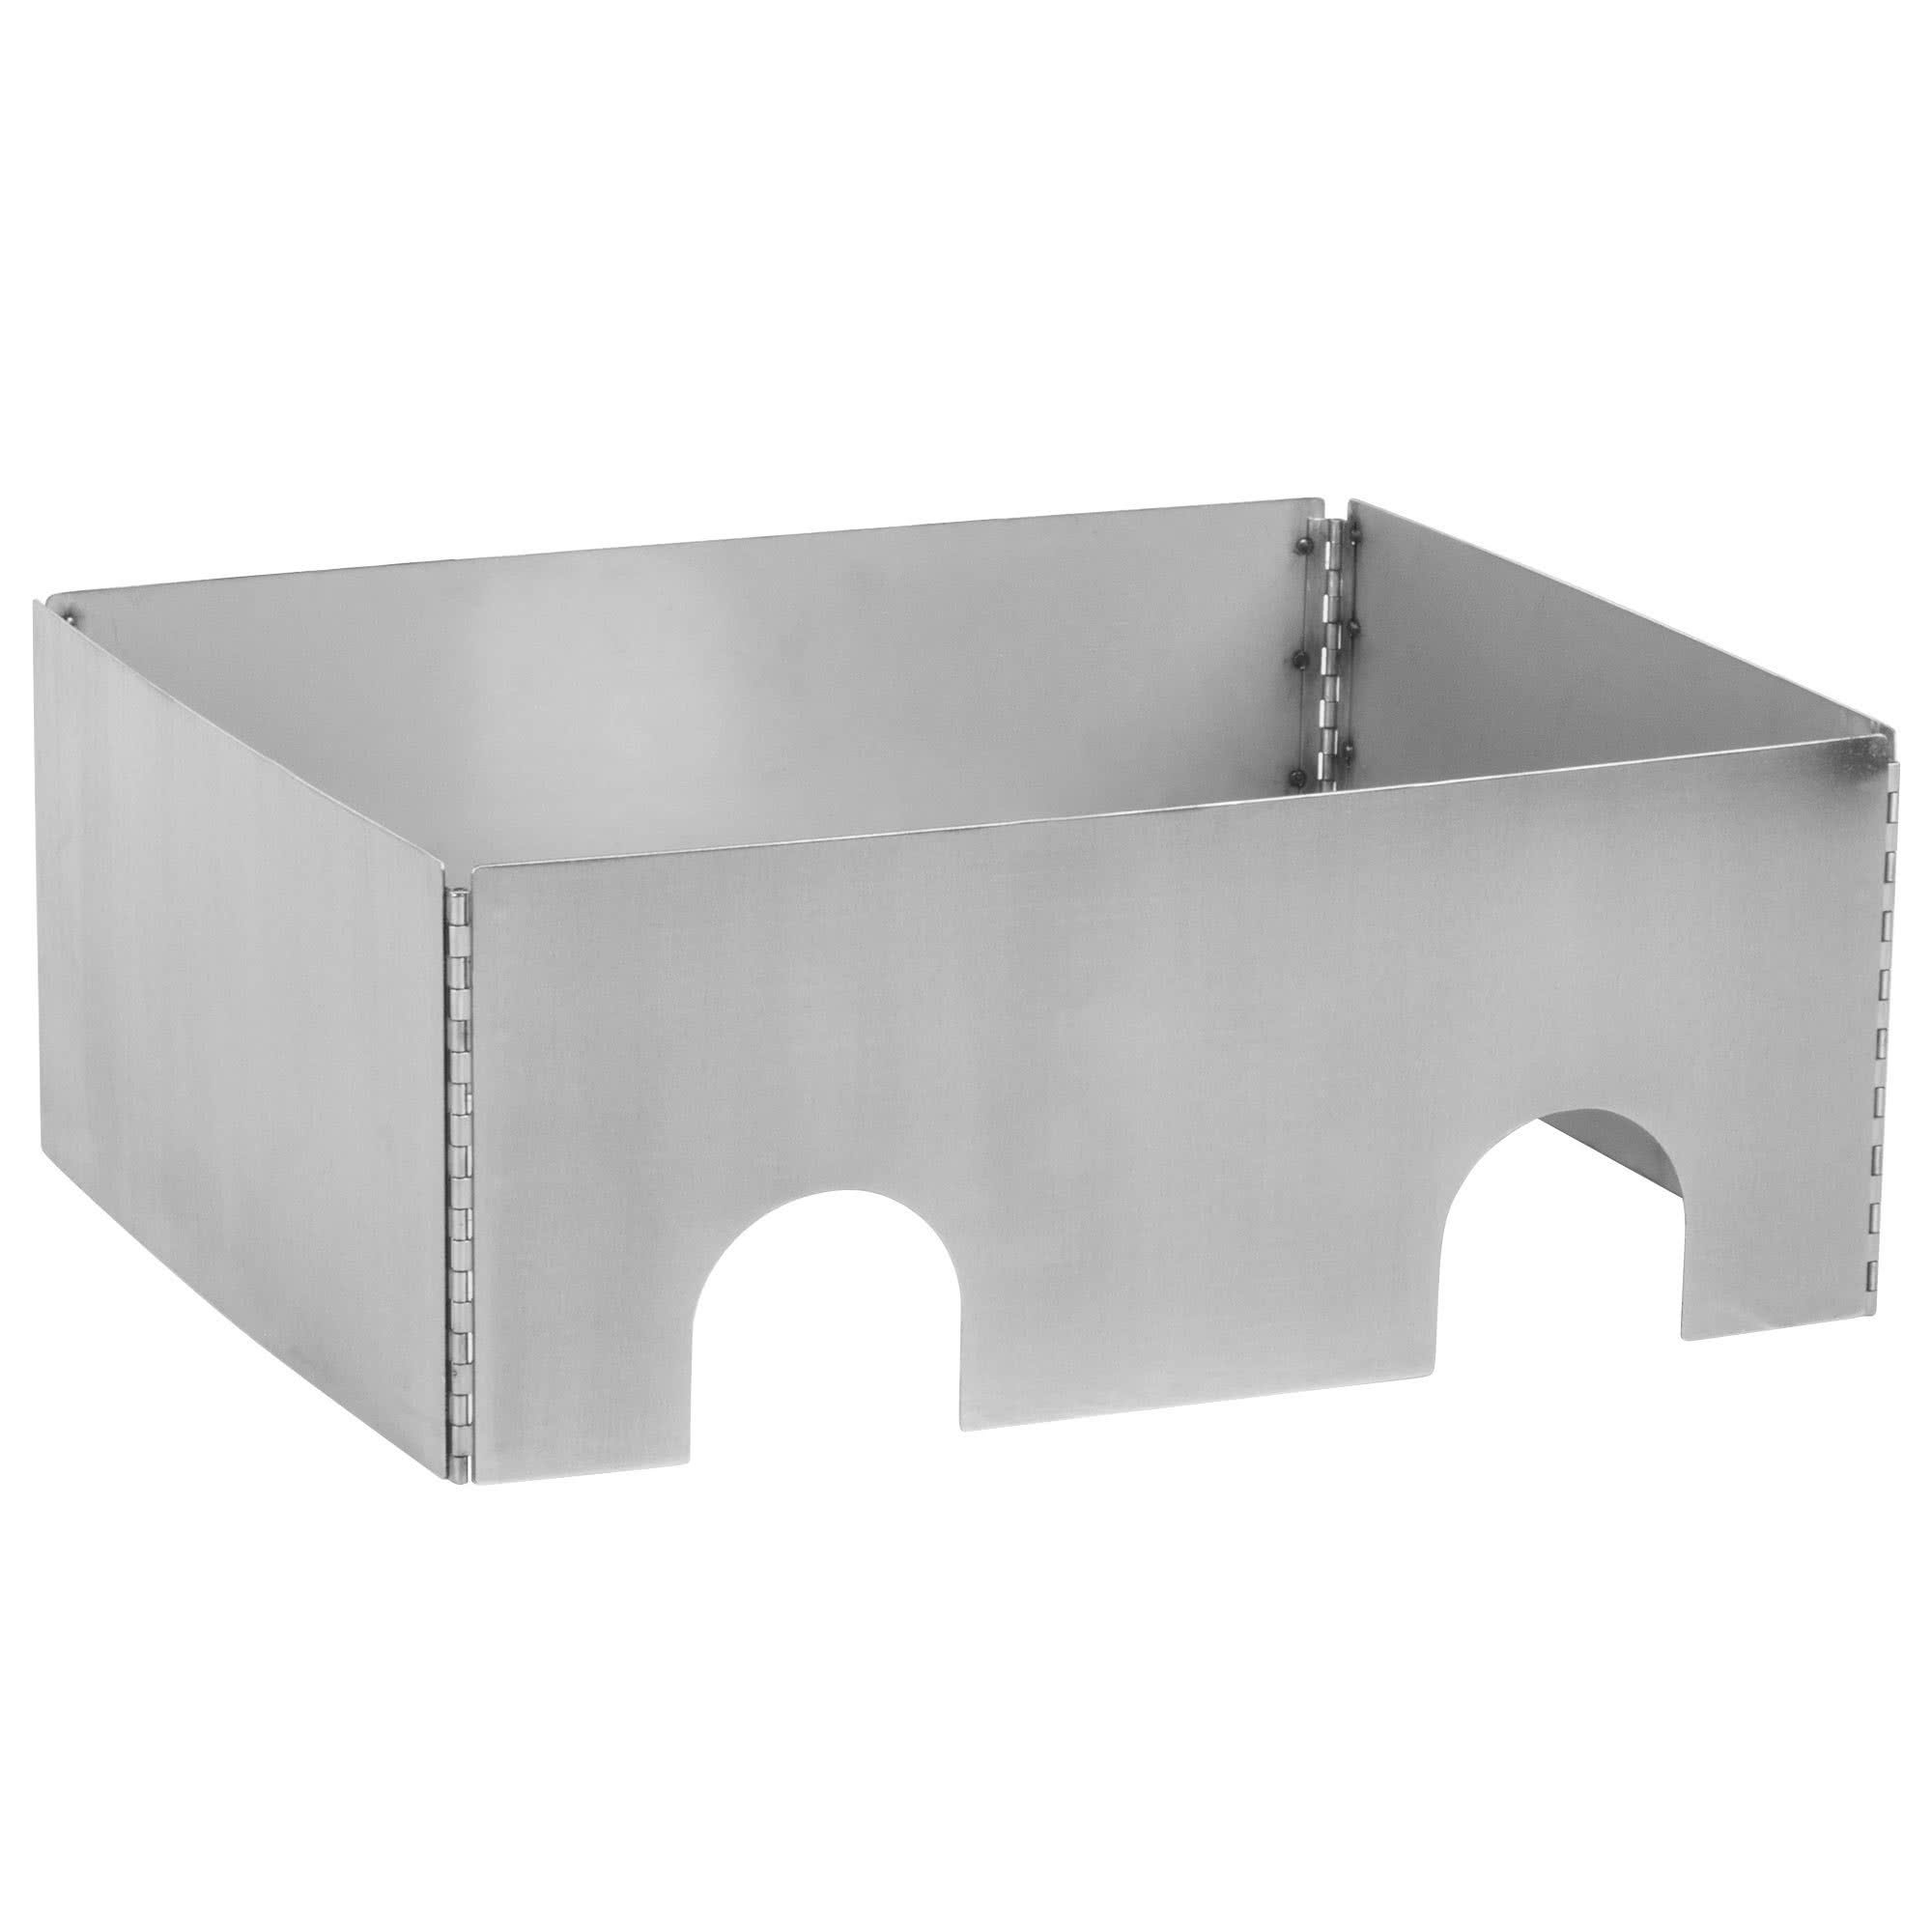 TableTop king Caterware CW602BRS 2-Well Collapsible 16 Gauge Brushed Stainless Steel Server - 25 1/2'' x 20 1/2'' x 10''